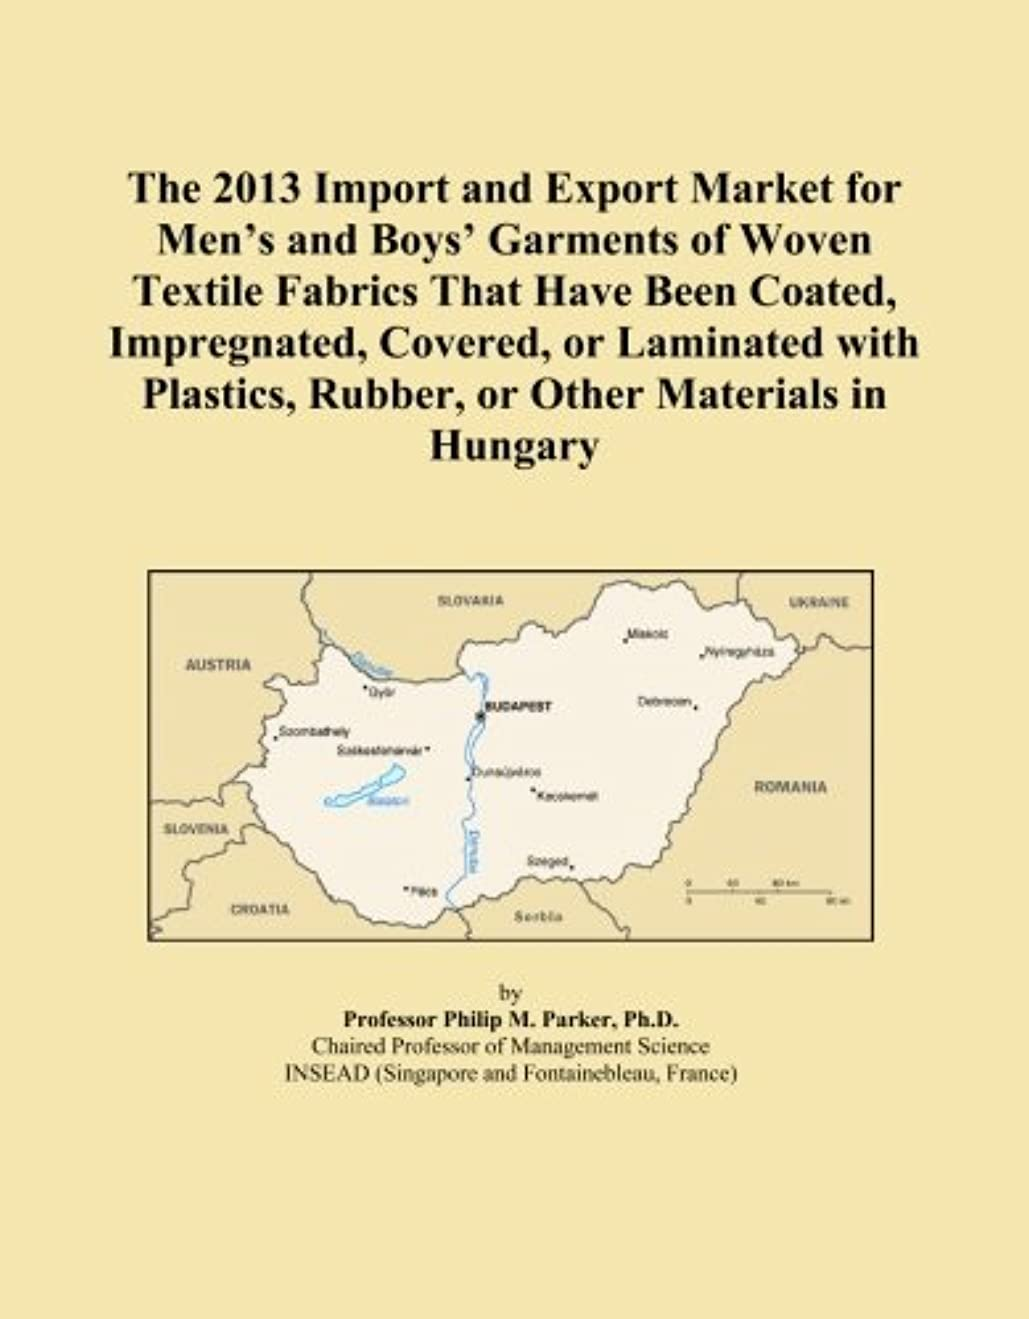 The 2013 Import and Export Market for Men's and Boys' Garments of Woven Textile Fabrics That Have Been Coated, Impregnated, Covered, or Laminated with Plastics, Rubber, or Other Materials in Hungary